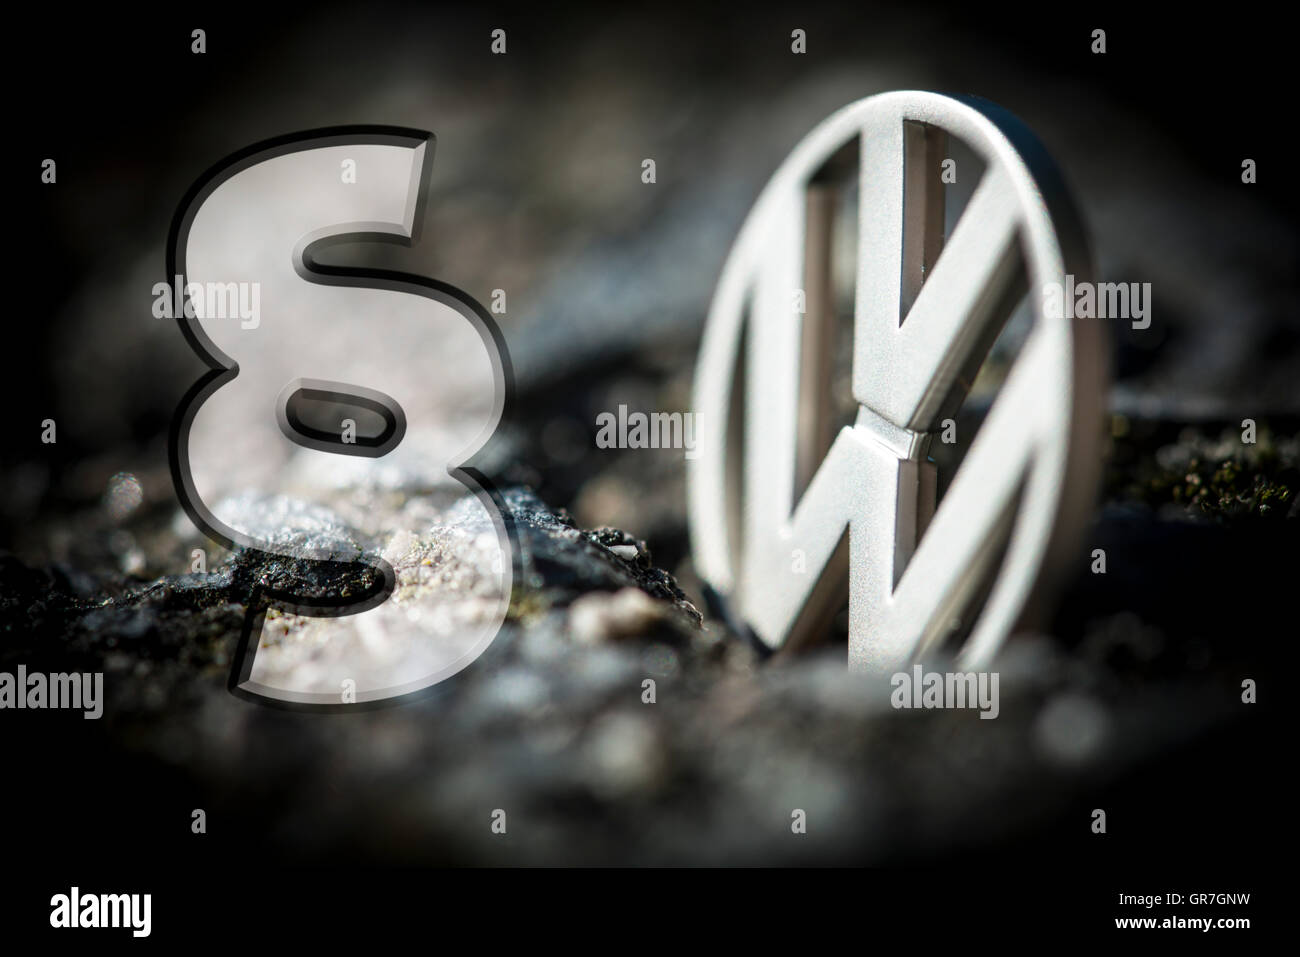 Vw Logo And Paragraph Sign, Vw Scandal - Stock Image